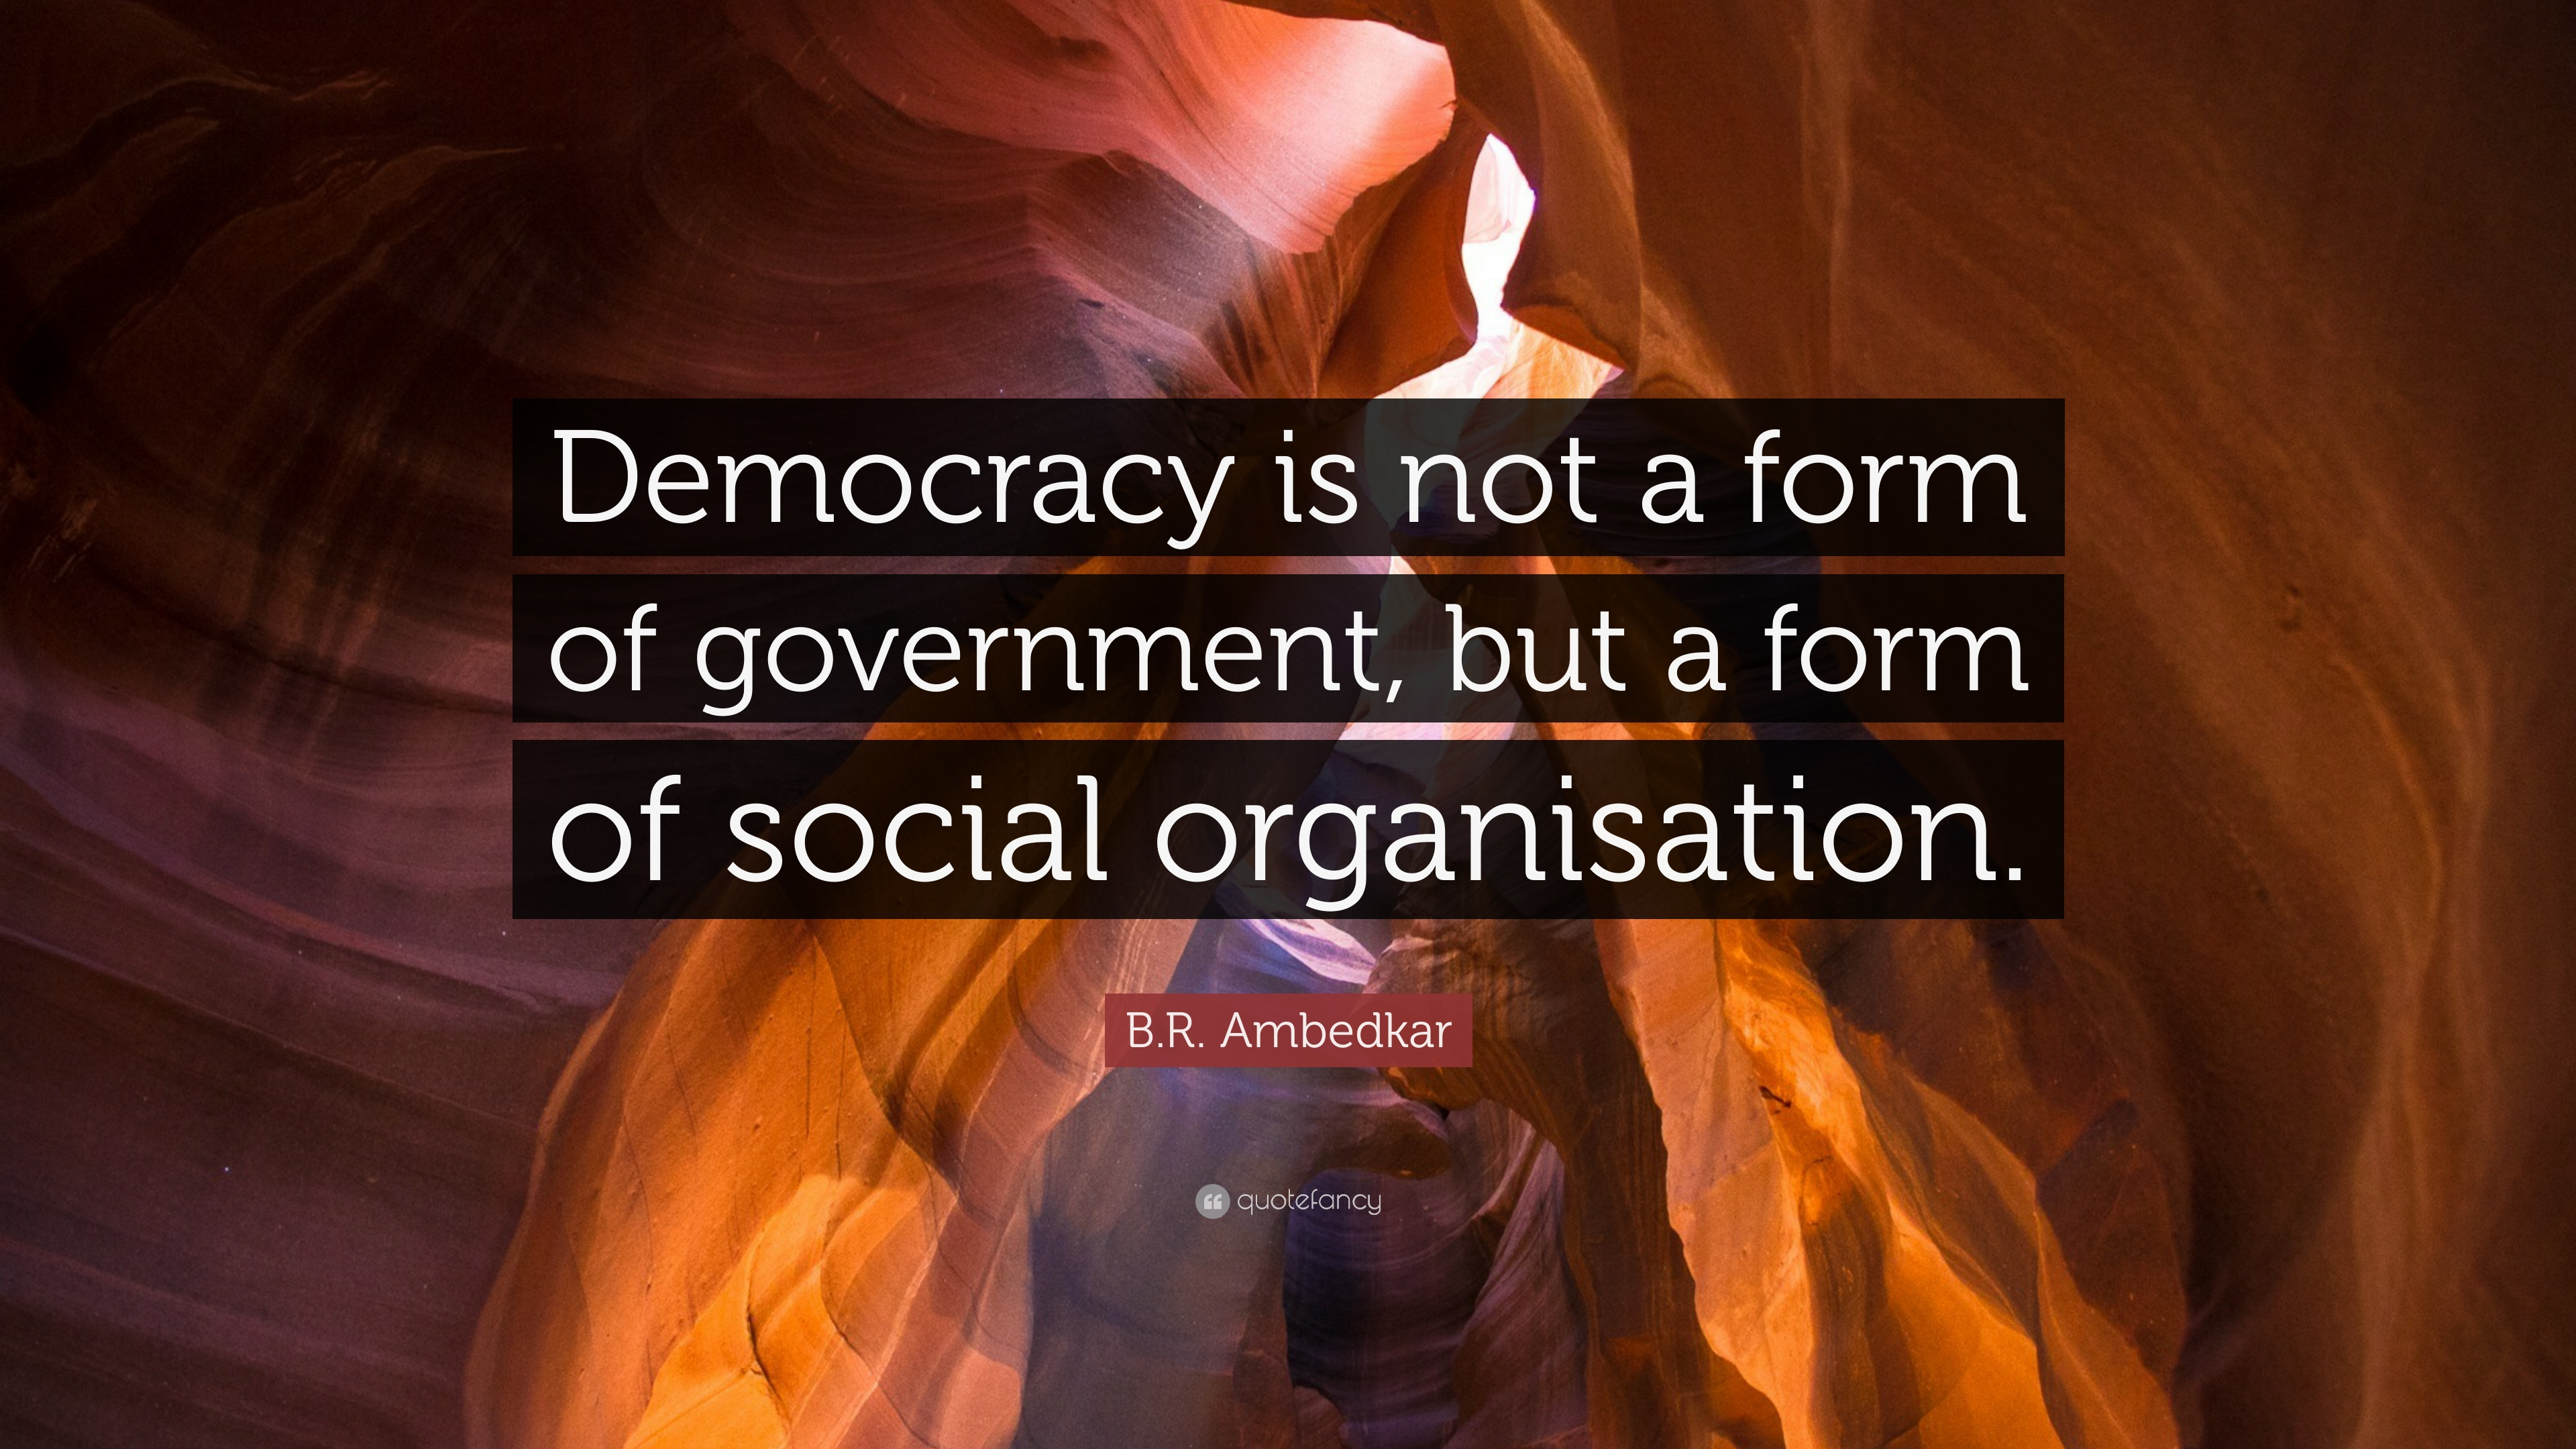 Democracy as a form of government